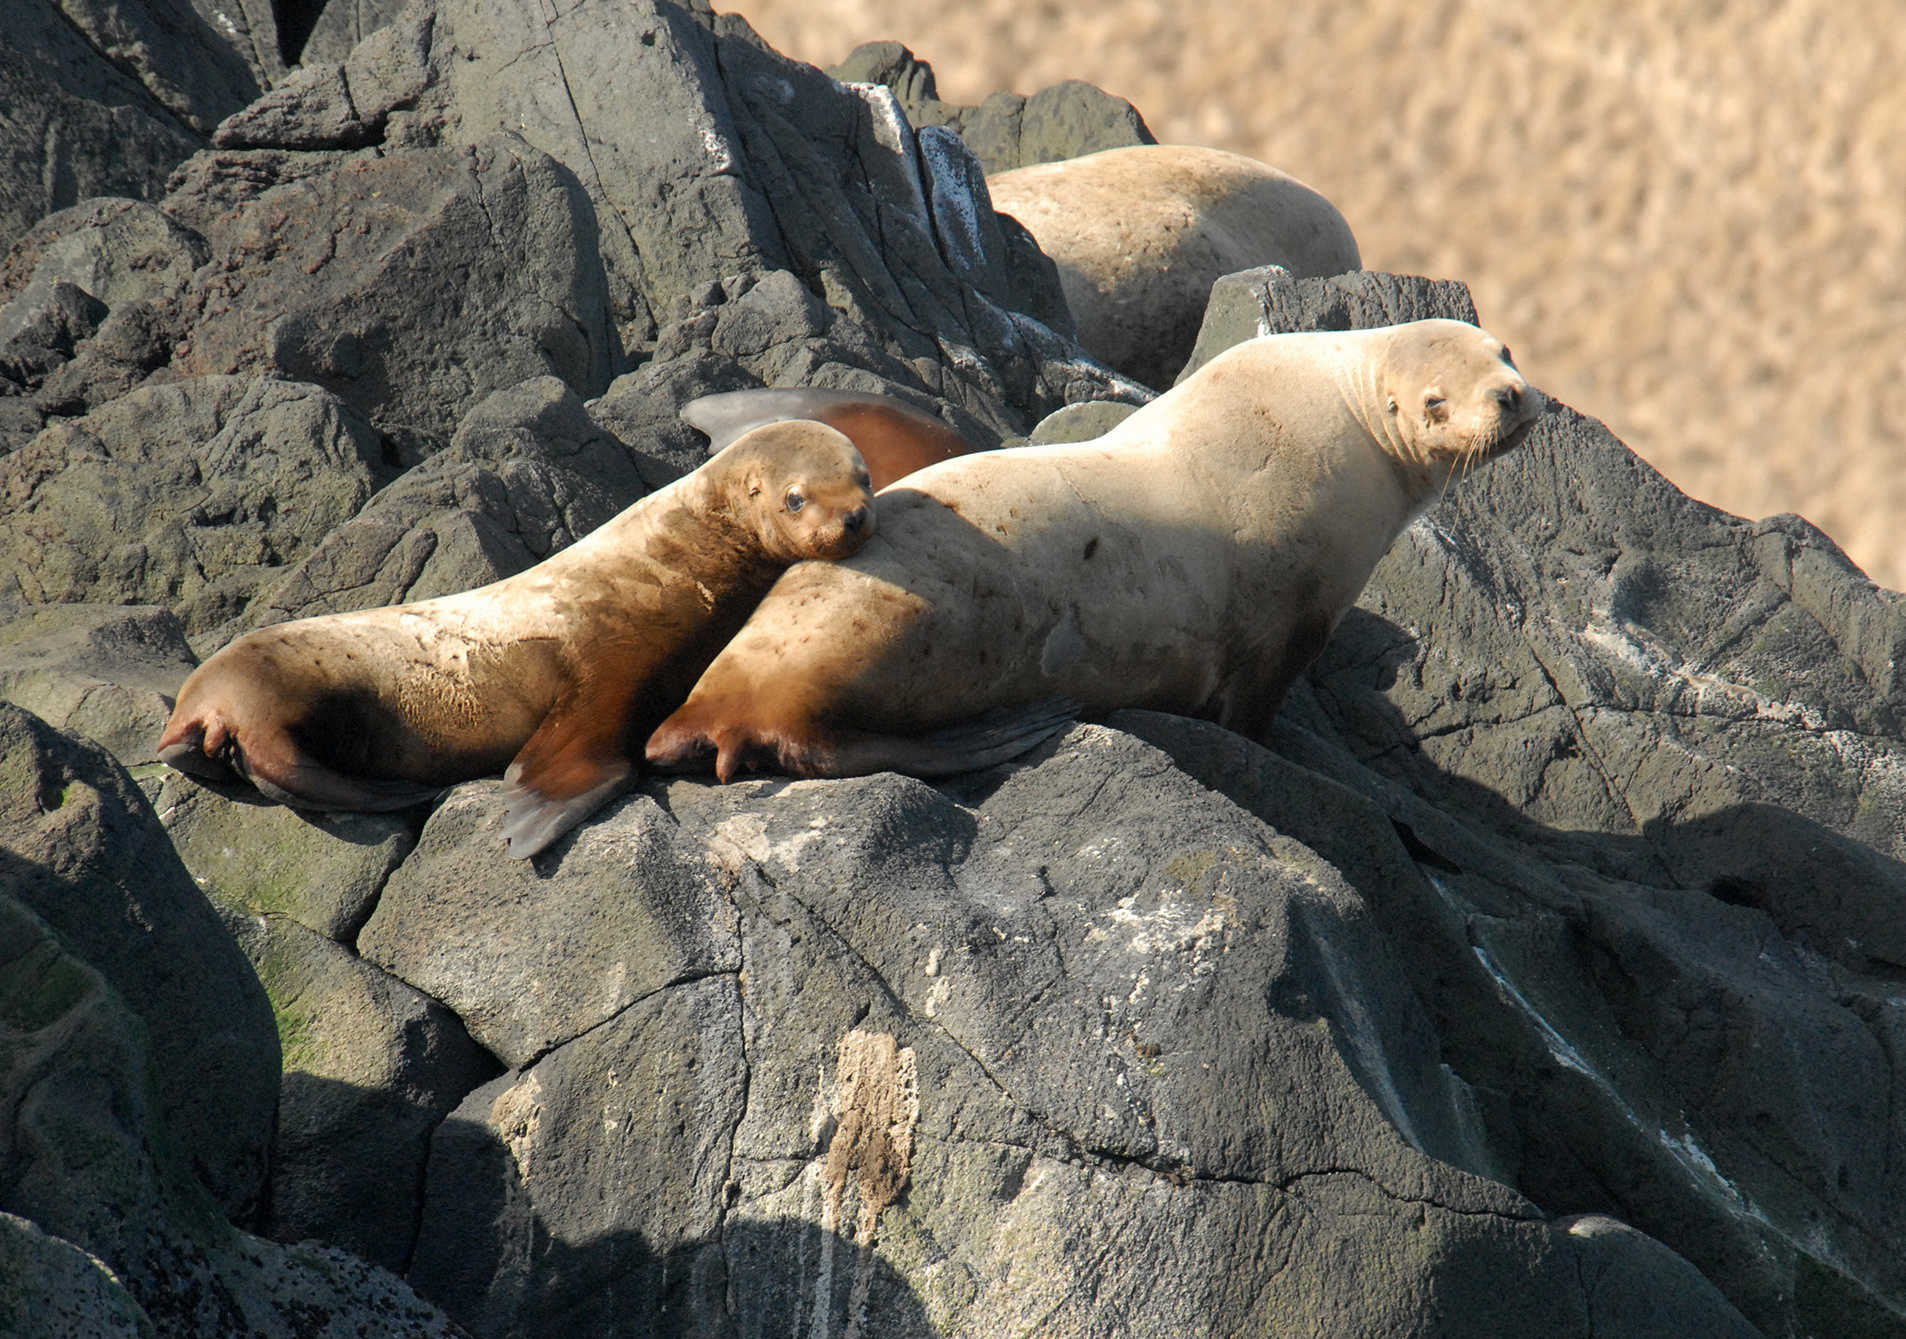 U S  to reconsider sea lion protection | The Spokesman-Review